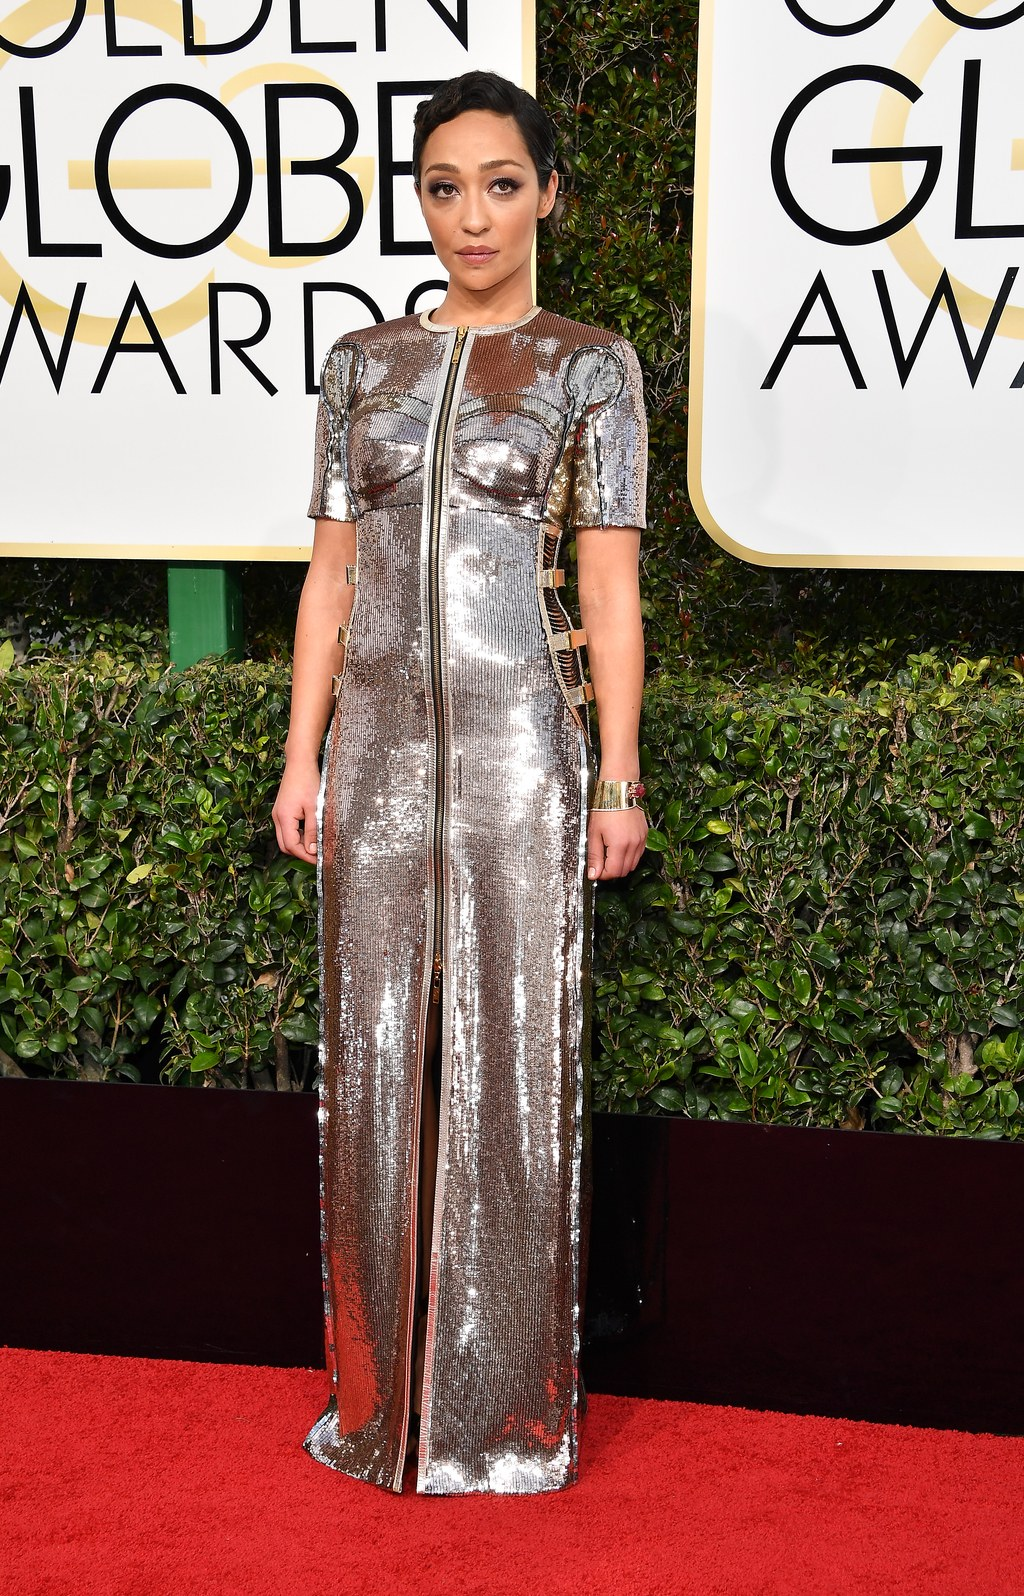 Ruth Negga at the Golden Globes. Picture by Steve Granitz/Getty Images